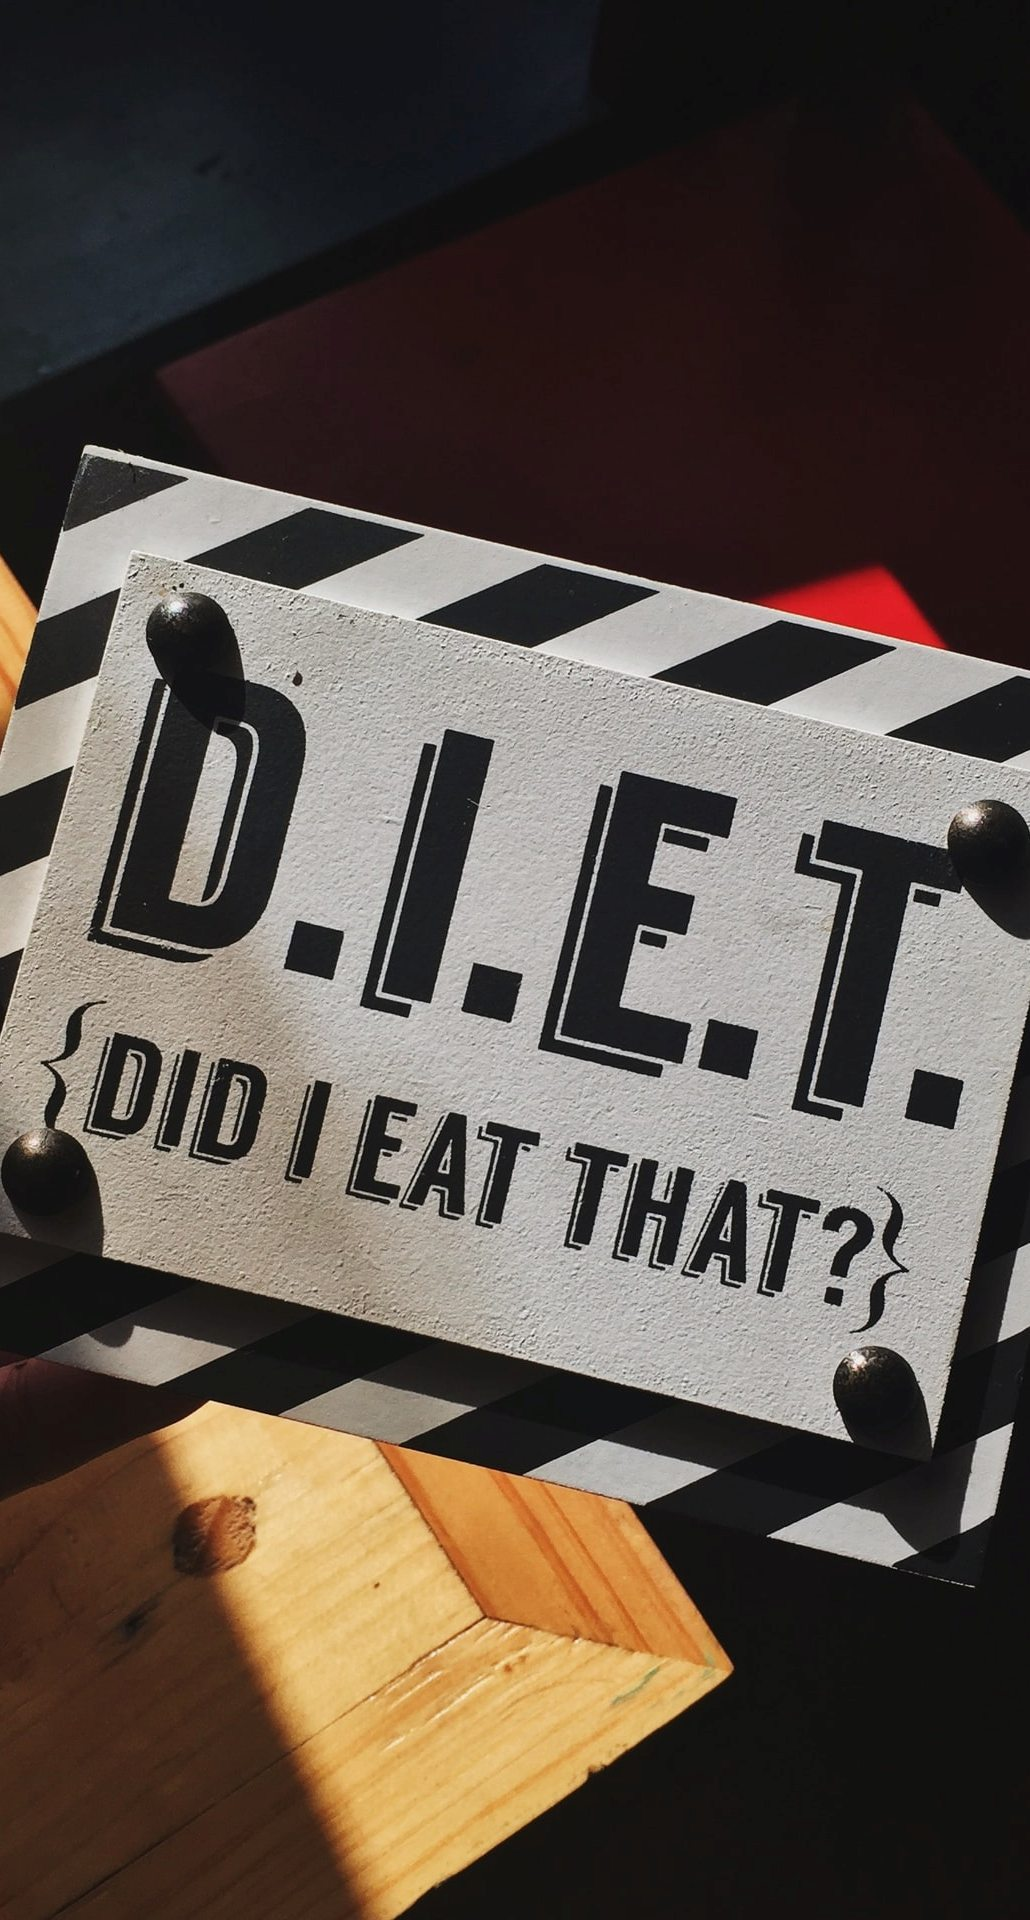 What a diet really means?